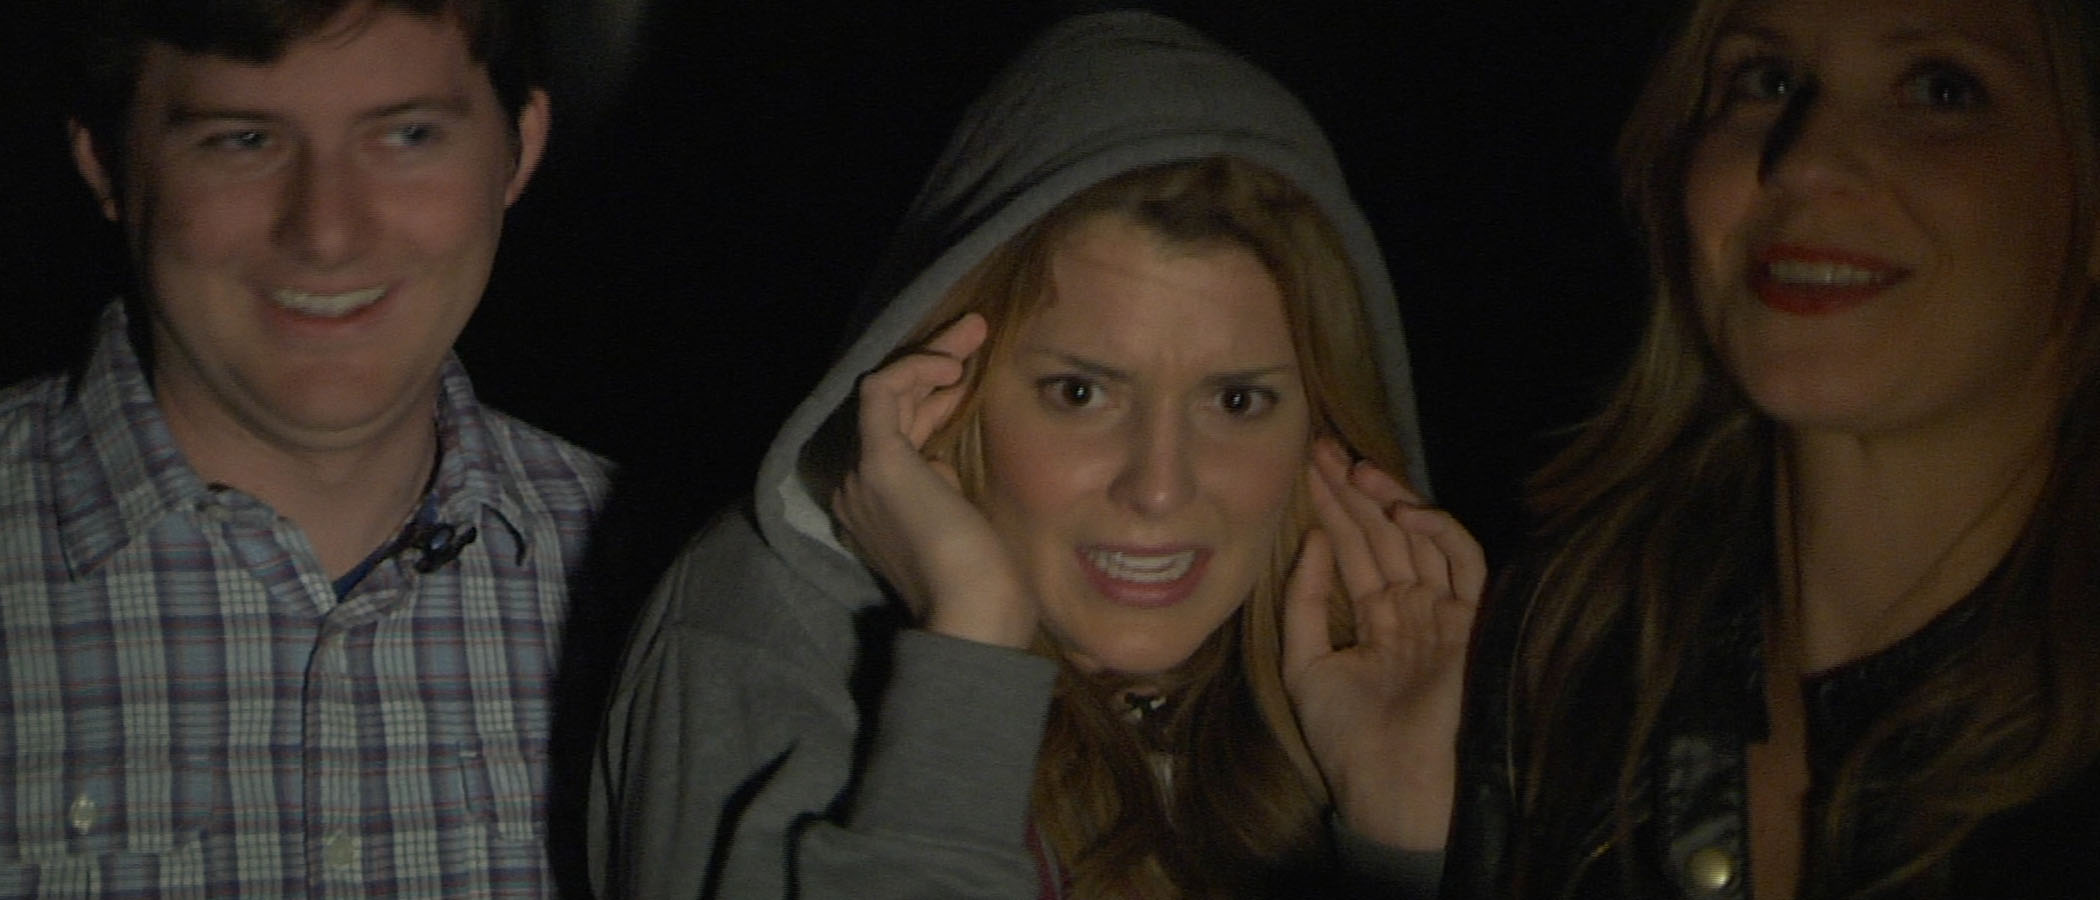 Haunted House with Grace Helbig